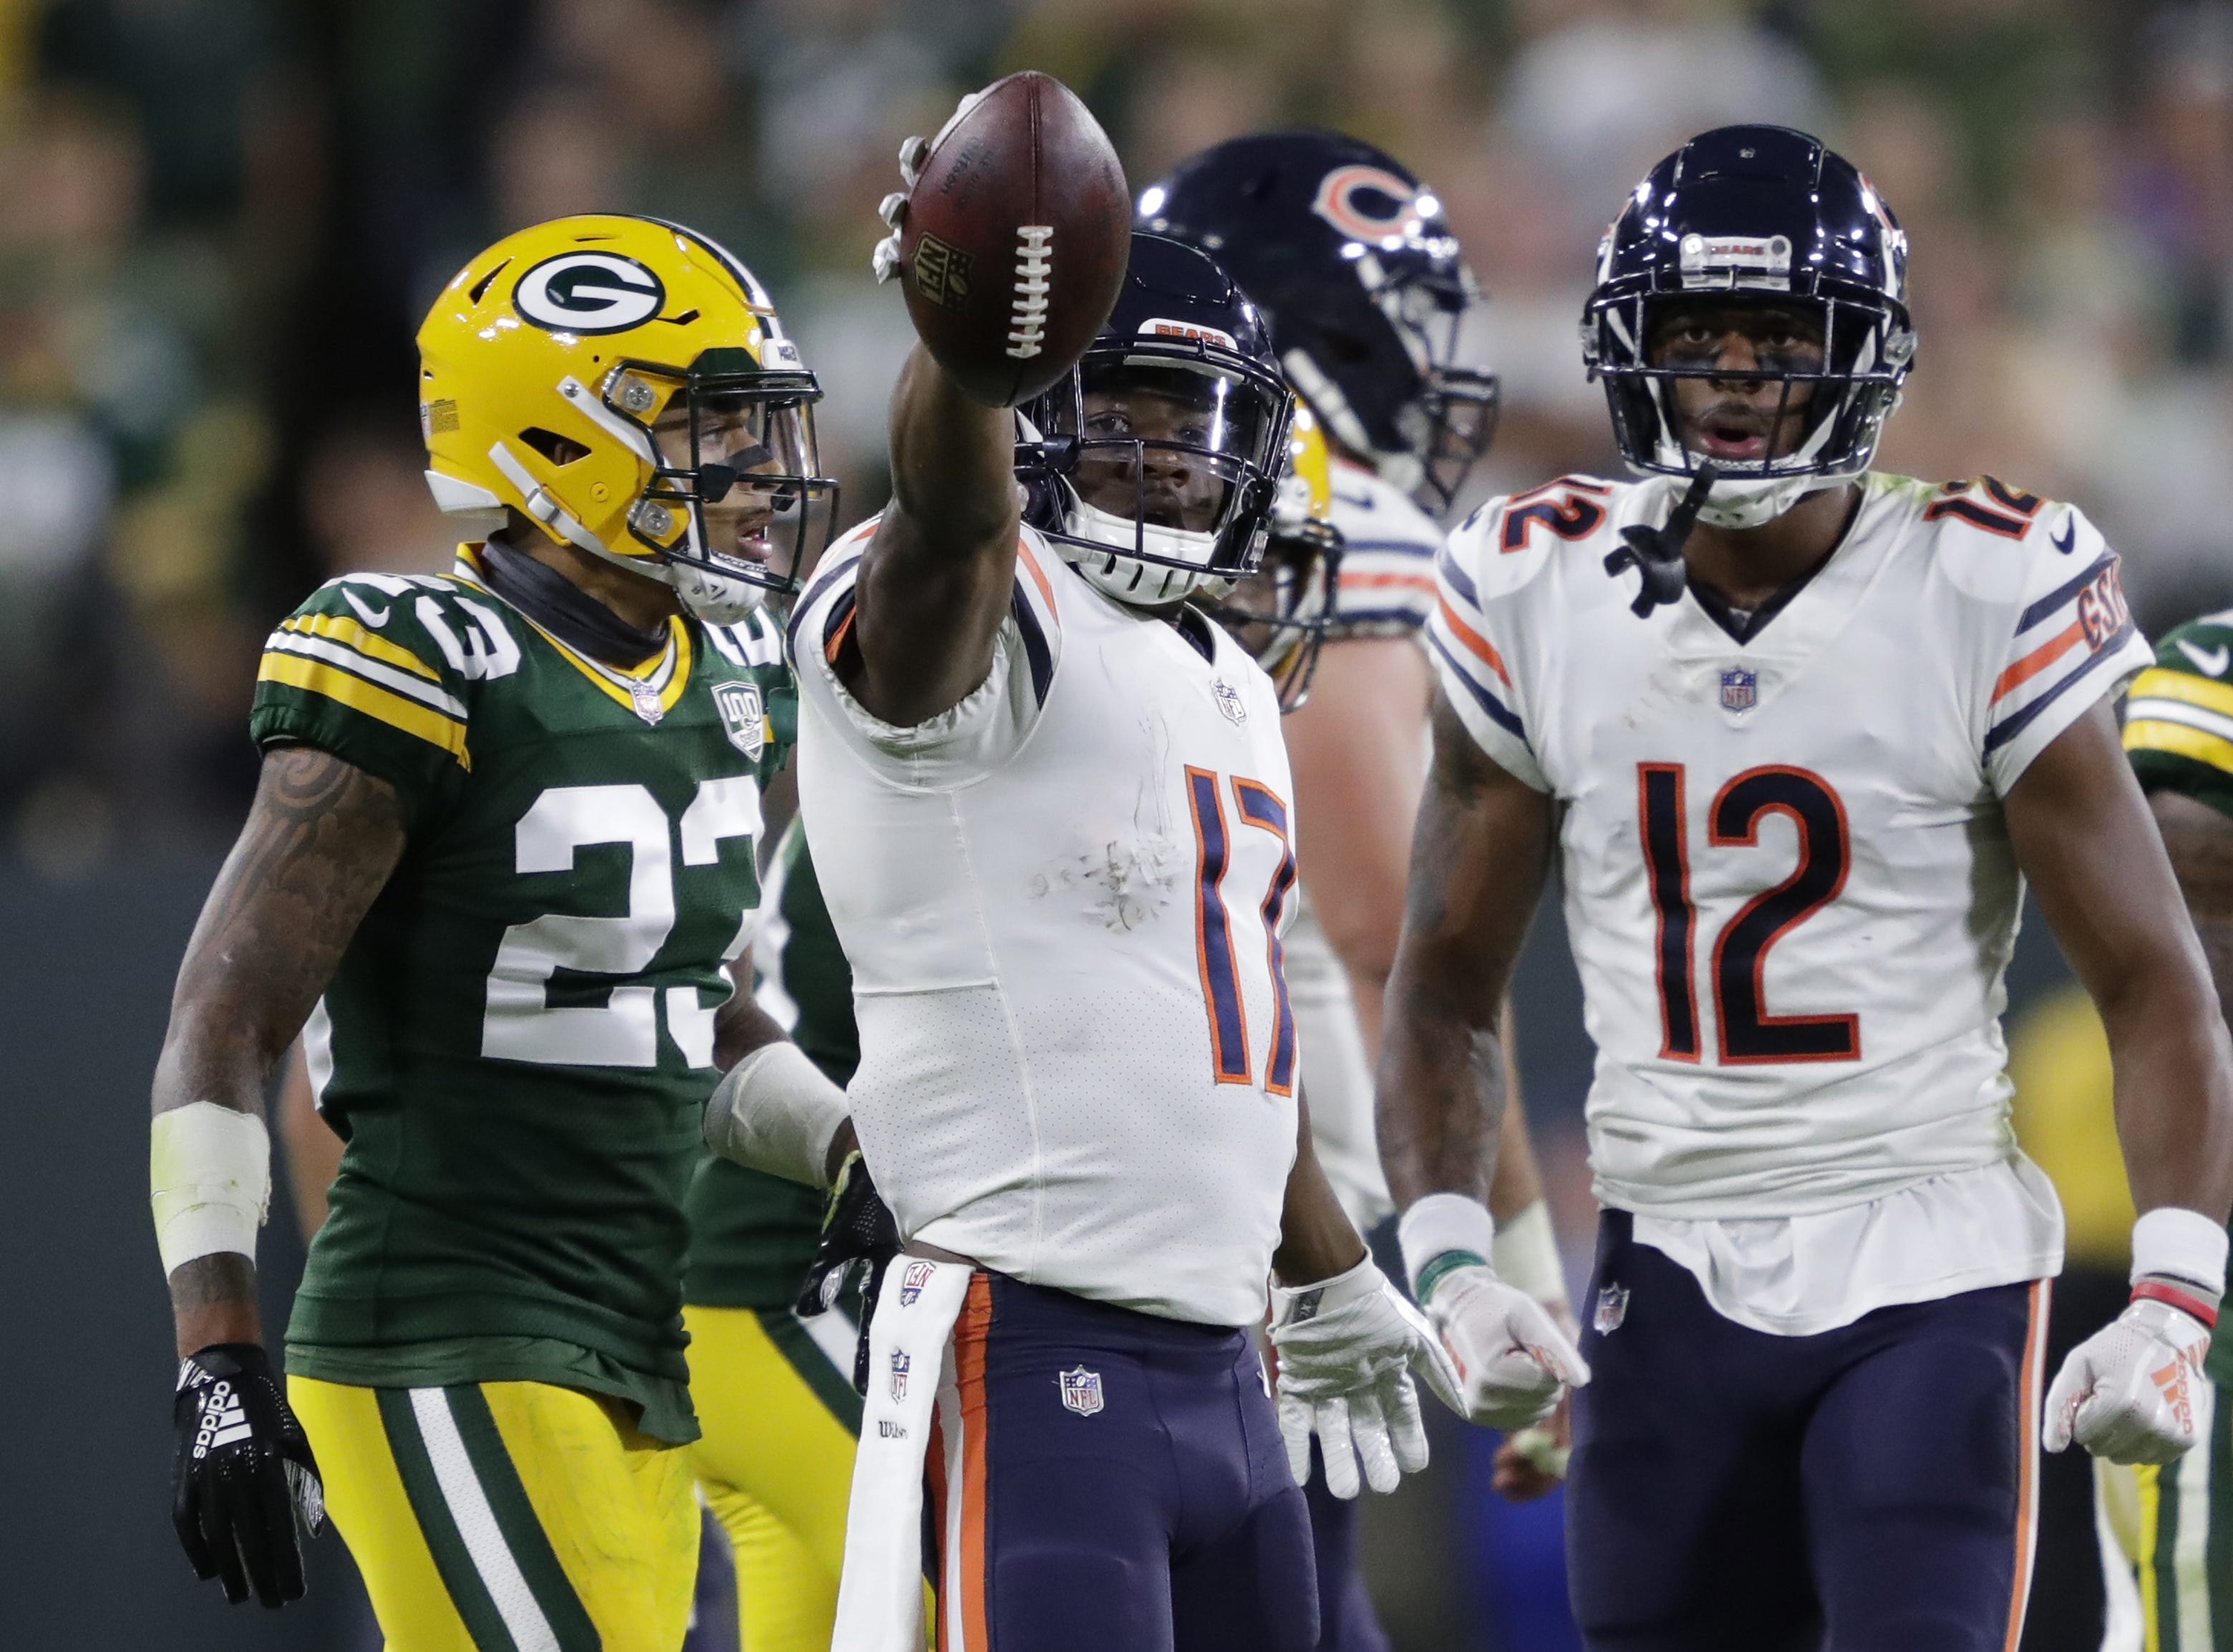 Chicago Bears wide receiver Anthony Miller (17) celebrates a first down reception in the fourth quarter against the Green Bay Packers Sunday, Sept. 9, 2018, at Lambeau Field in Green Bay, Wis.